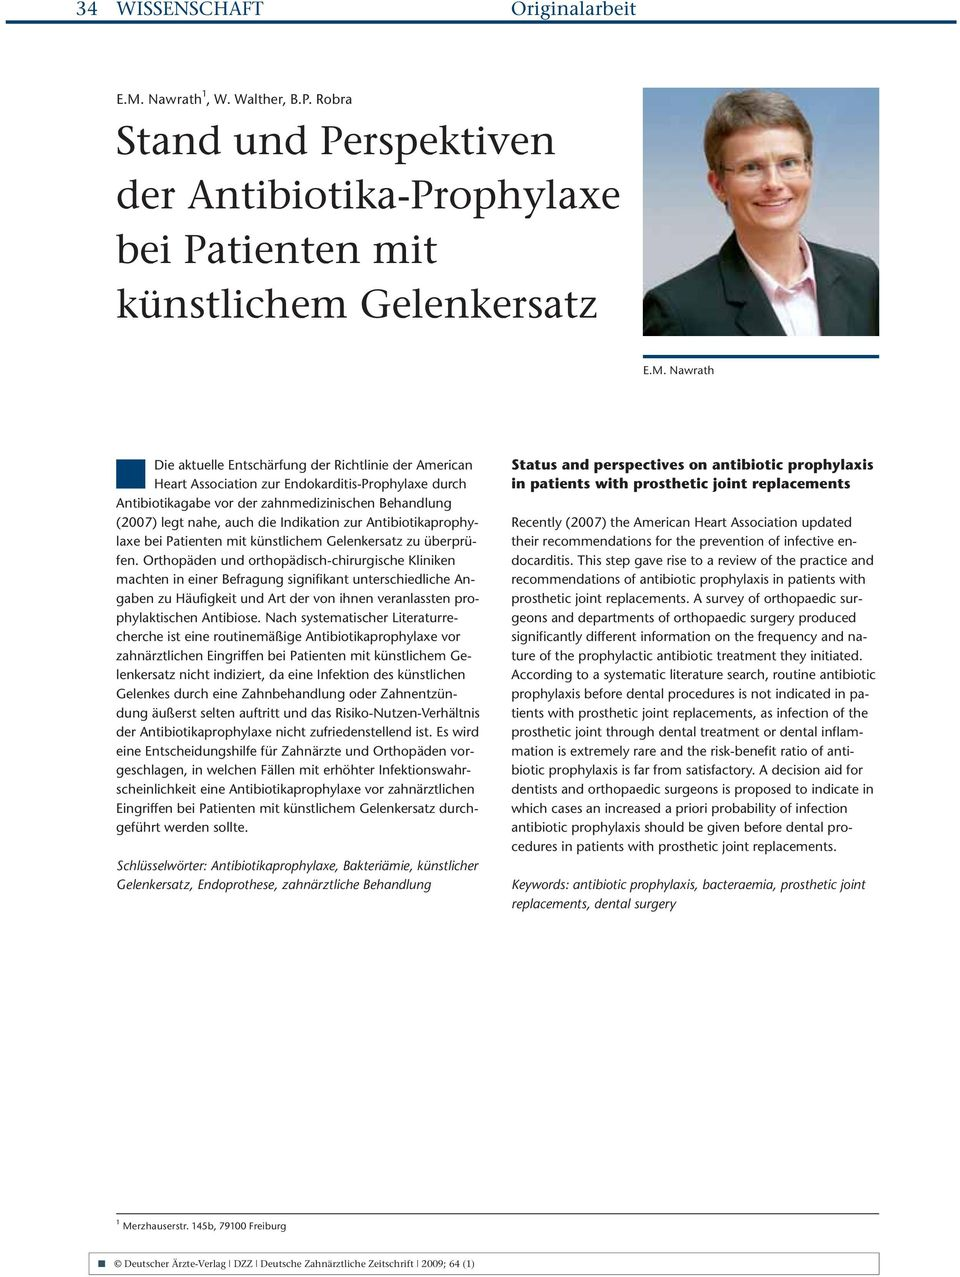 perioperative antibiotikaprophylaxe urologie